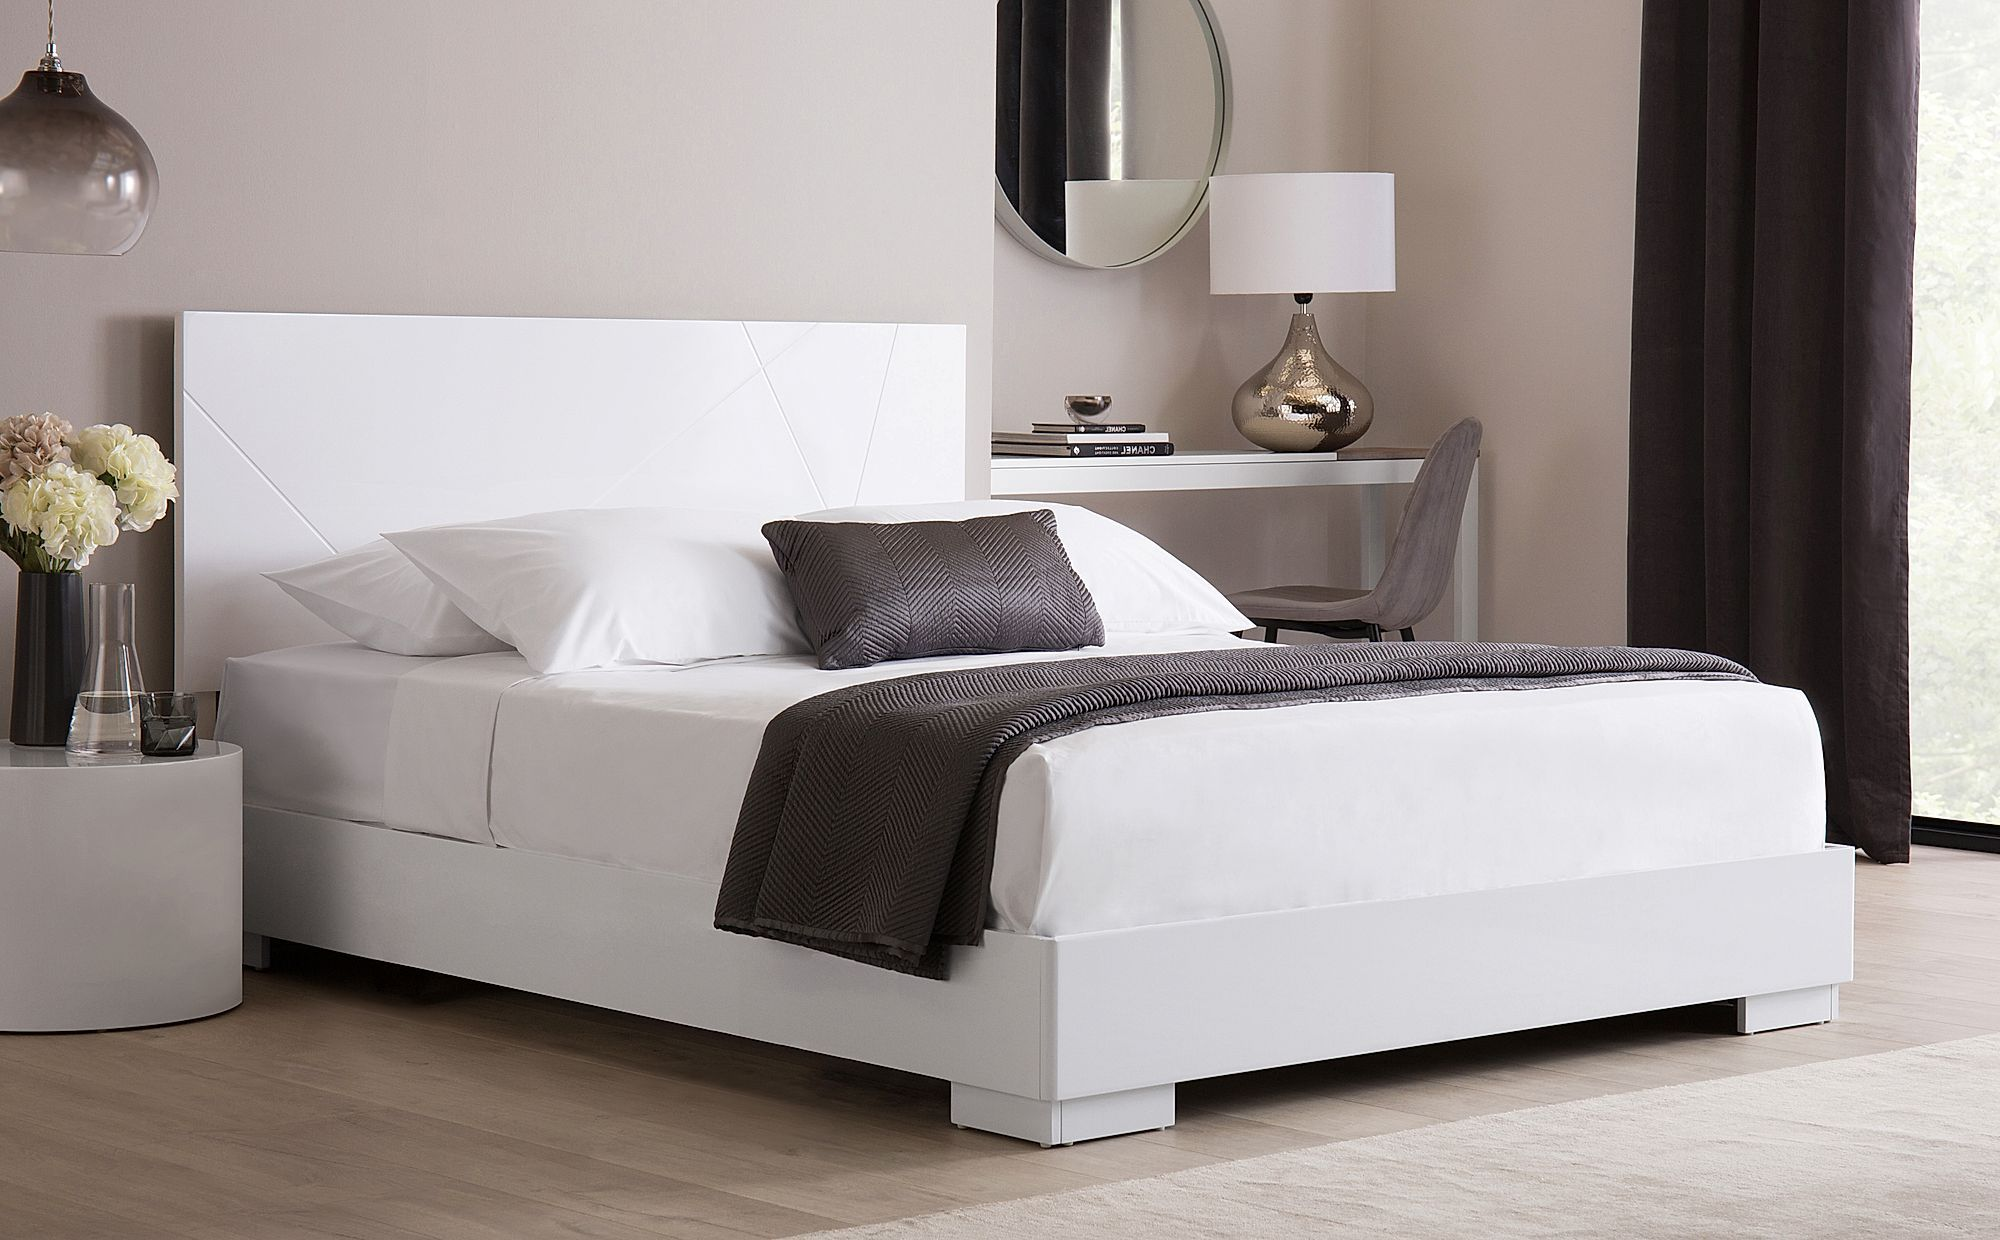 Turin White High Gloss Bed King Size (With images) Bed